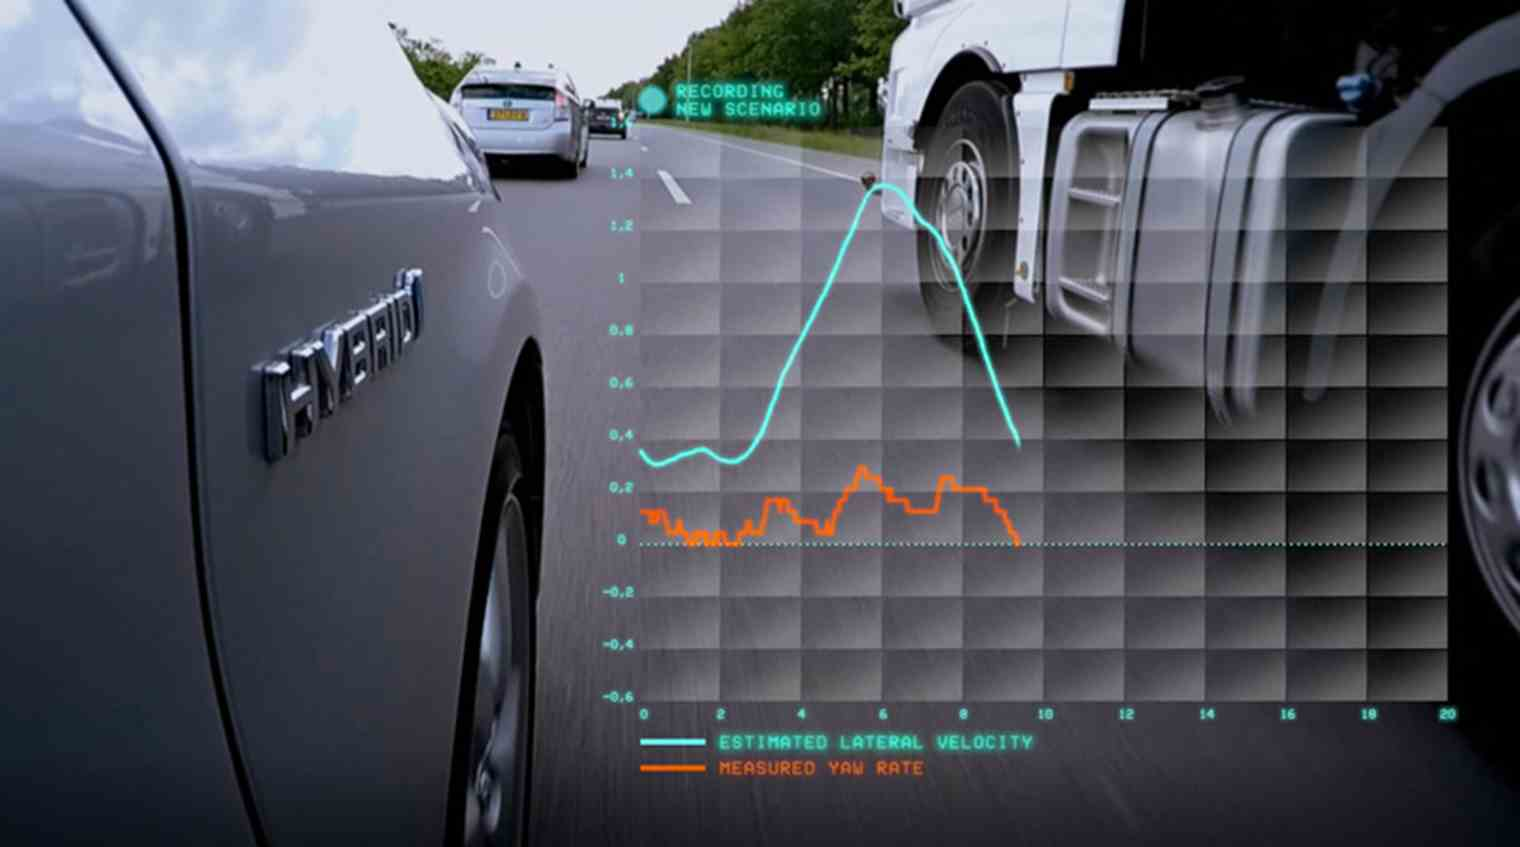 Scenario Based Safety Validation For Connected And Automated Driving Automatic Railway Gate Control System With High Speed Alerting Test Drives Prototype Systems Appear To Be An Enormous Effort It Does Not Seem Feasible Drive These Millions Of Kilometres